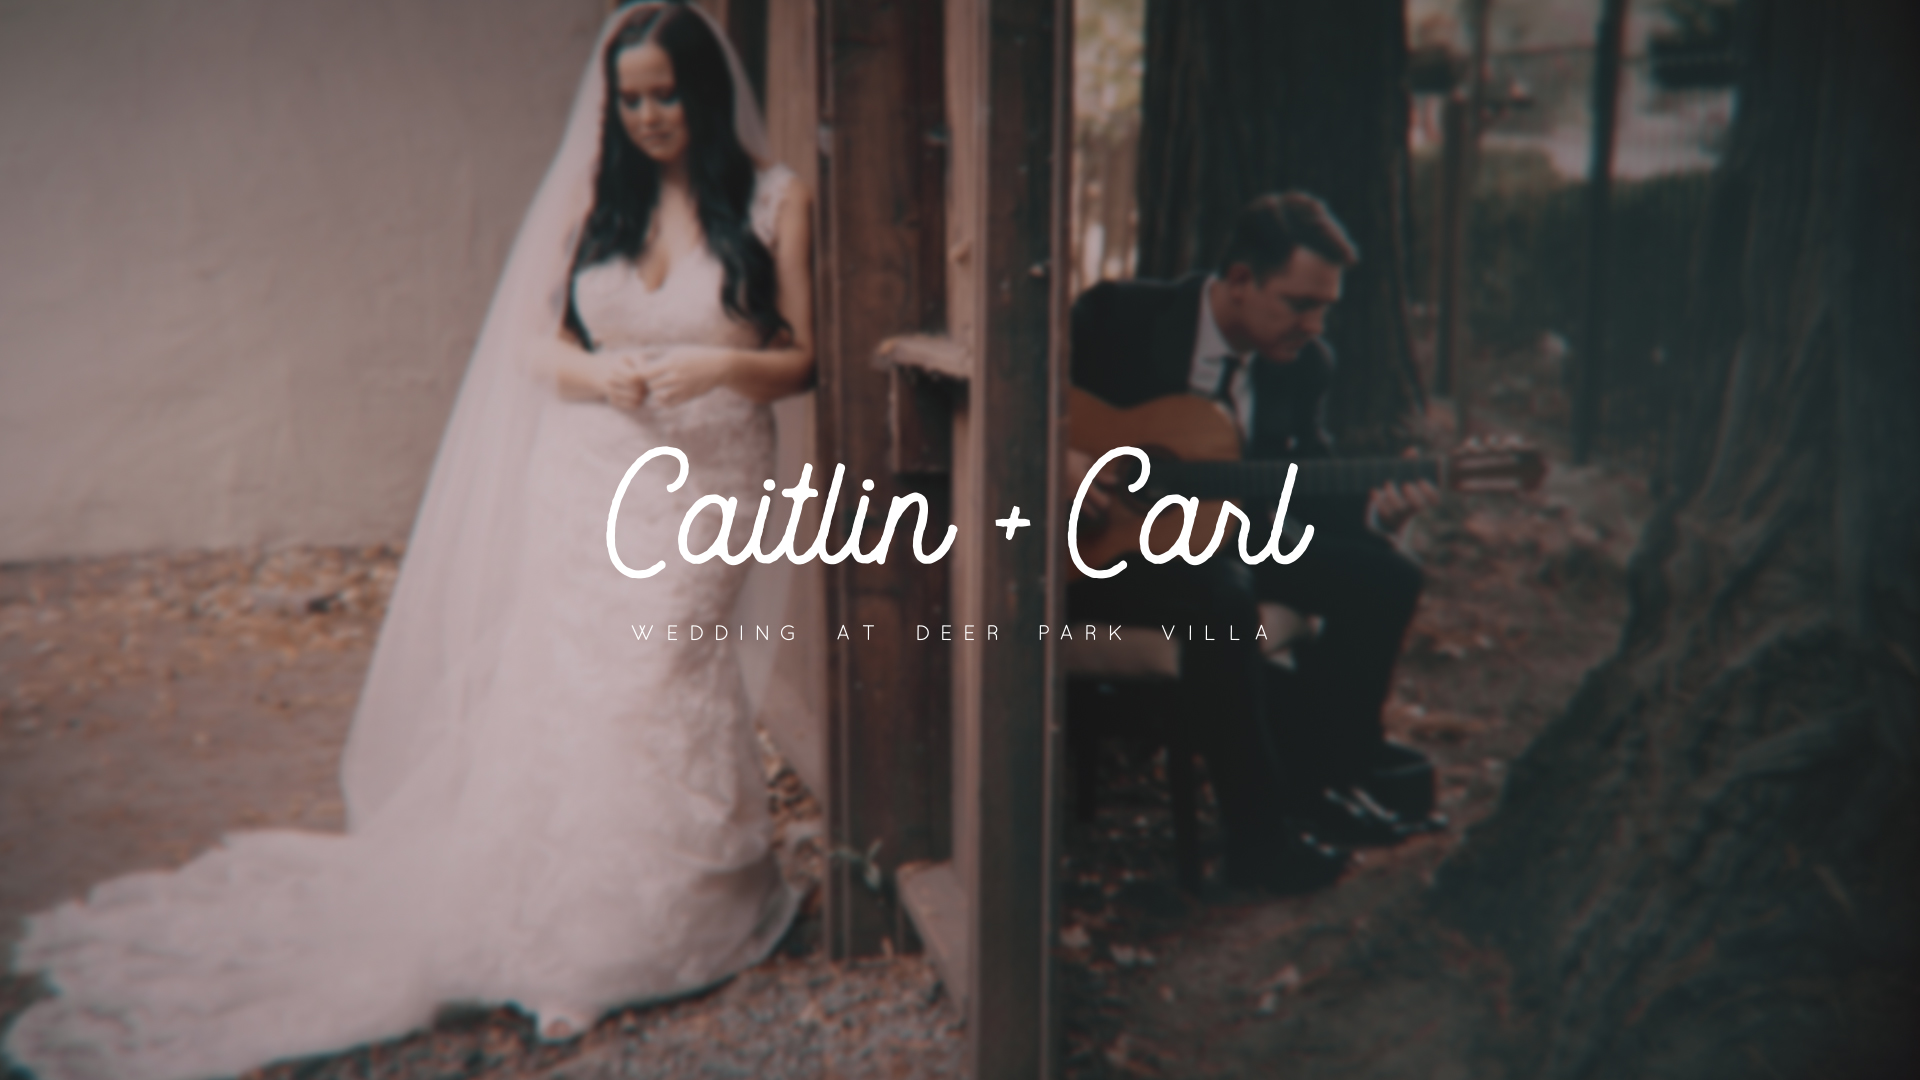 Caitlin + Carl | Fairfax, California | Deer Park Villa